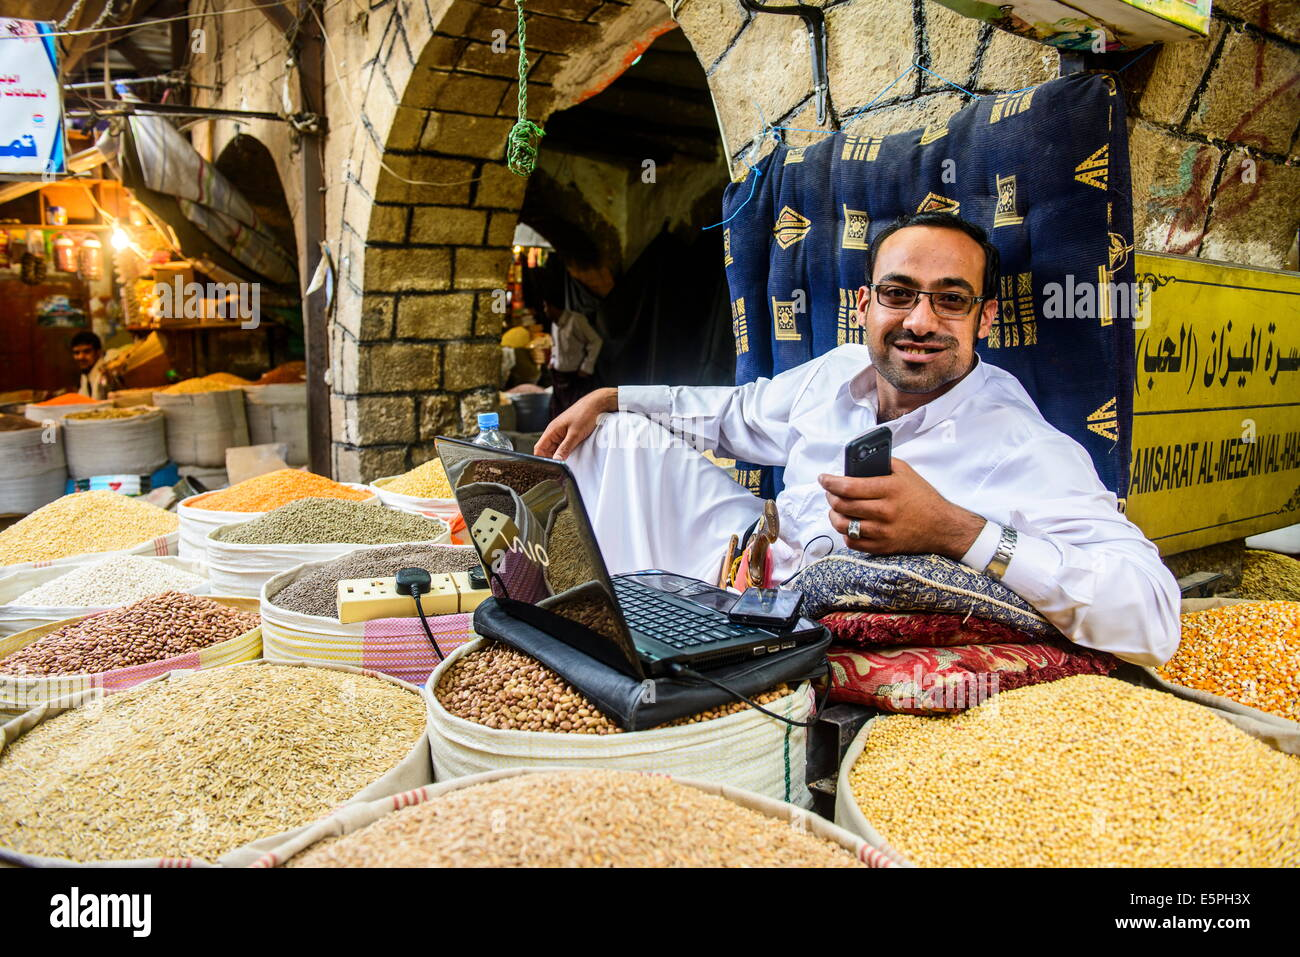 Shopkeeper at the spice market in the Old Town, UNESCO World Heritage Site, Sanaa, Yemen, Middle East - Stock Image